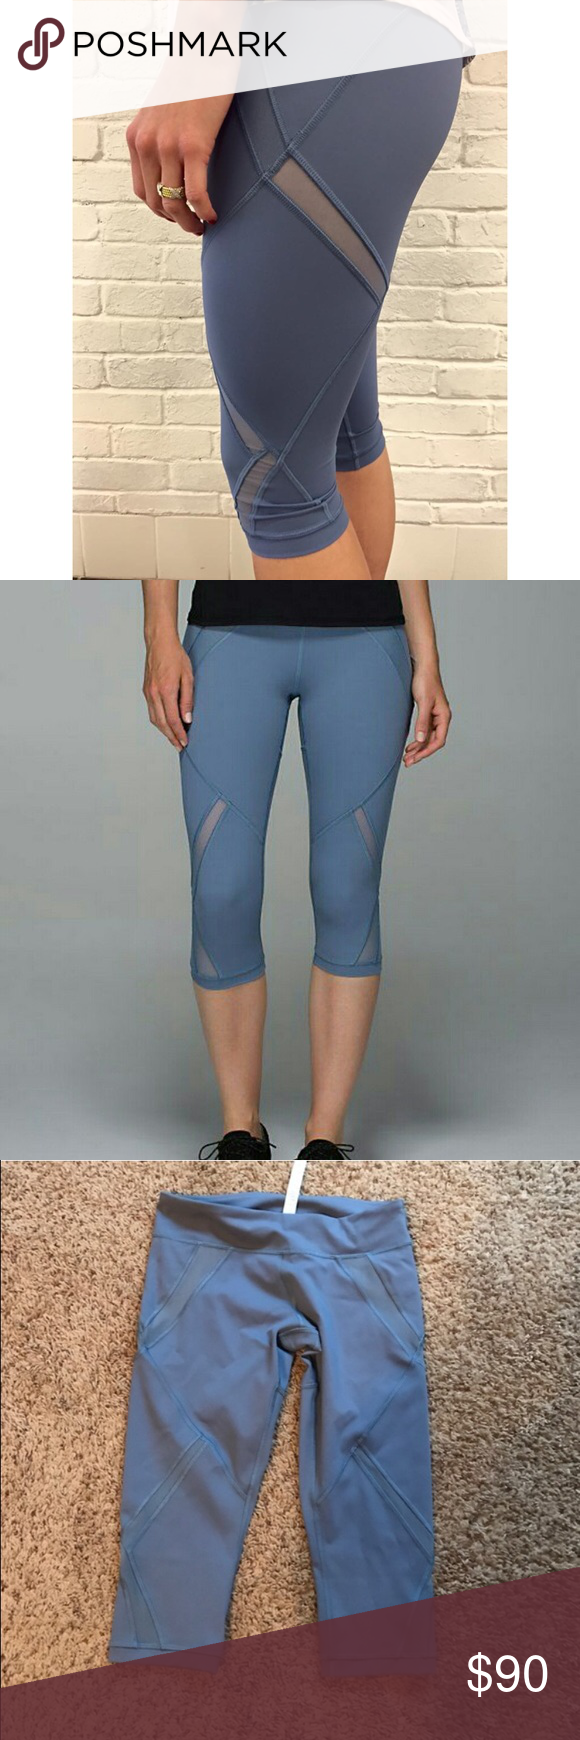 """NWOT Lululemon Cool to Street Crop Denim. Blue Cool to Street Crops in Denim Blue.  Knee-length crop.  Sweat-wicking Luxtreme fabric.  Added LYCRA fibre with contoured Mesh fabric ventilation.  Waistband pocket.  Chafe-resistant flat seams. Tight fit.  Medium rise.  17"""" inseam. lululemon athletica Pants"""